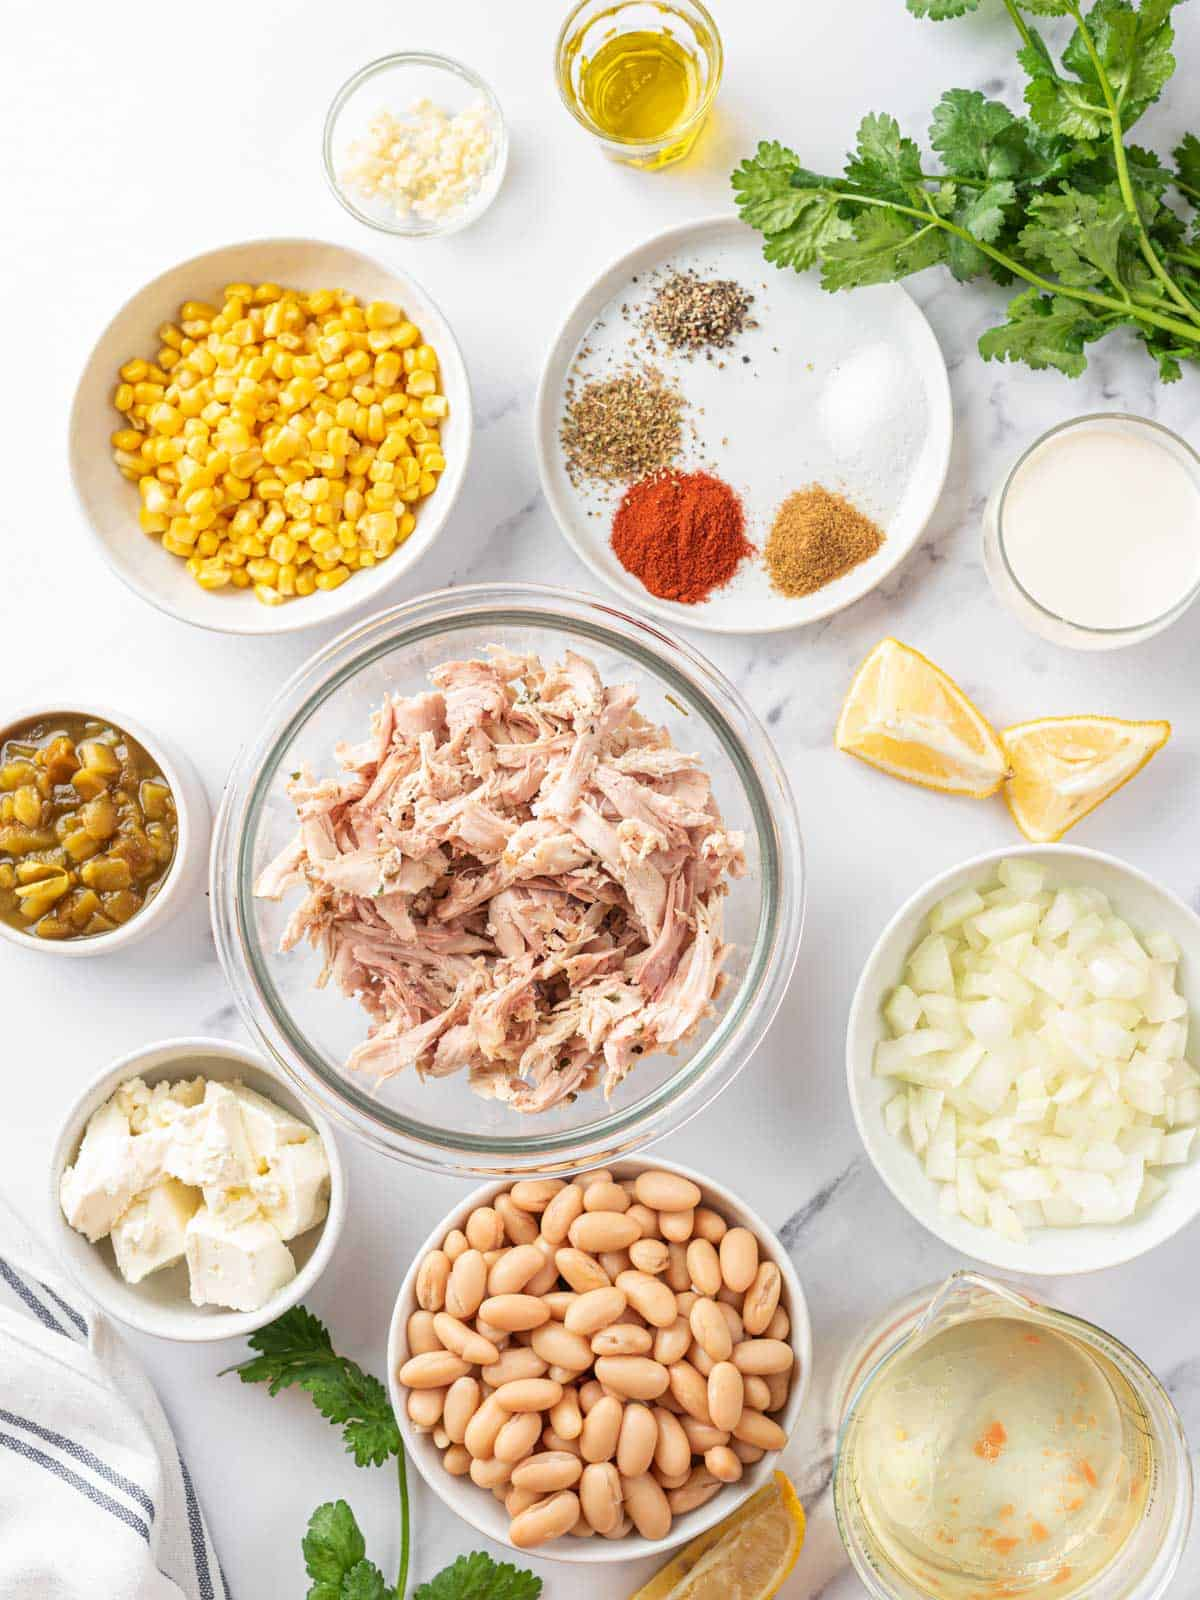 ingredients of White Chicken Chili Recipe laid out